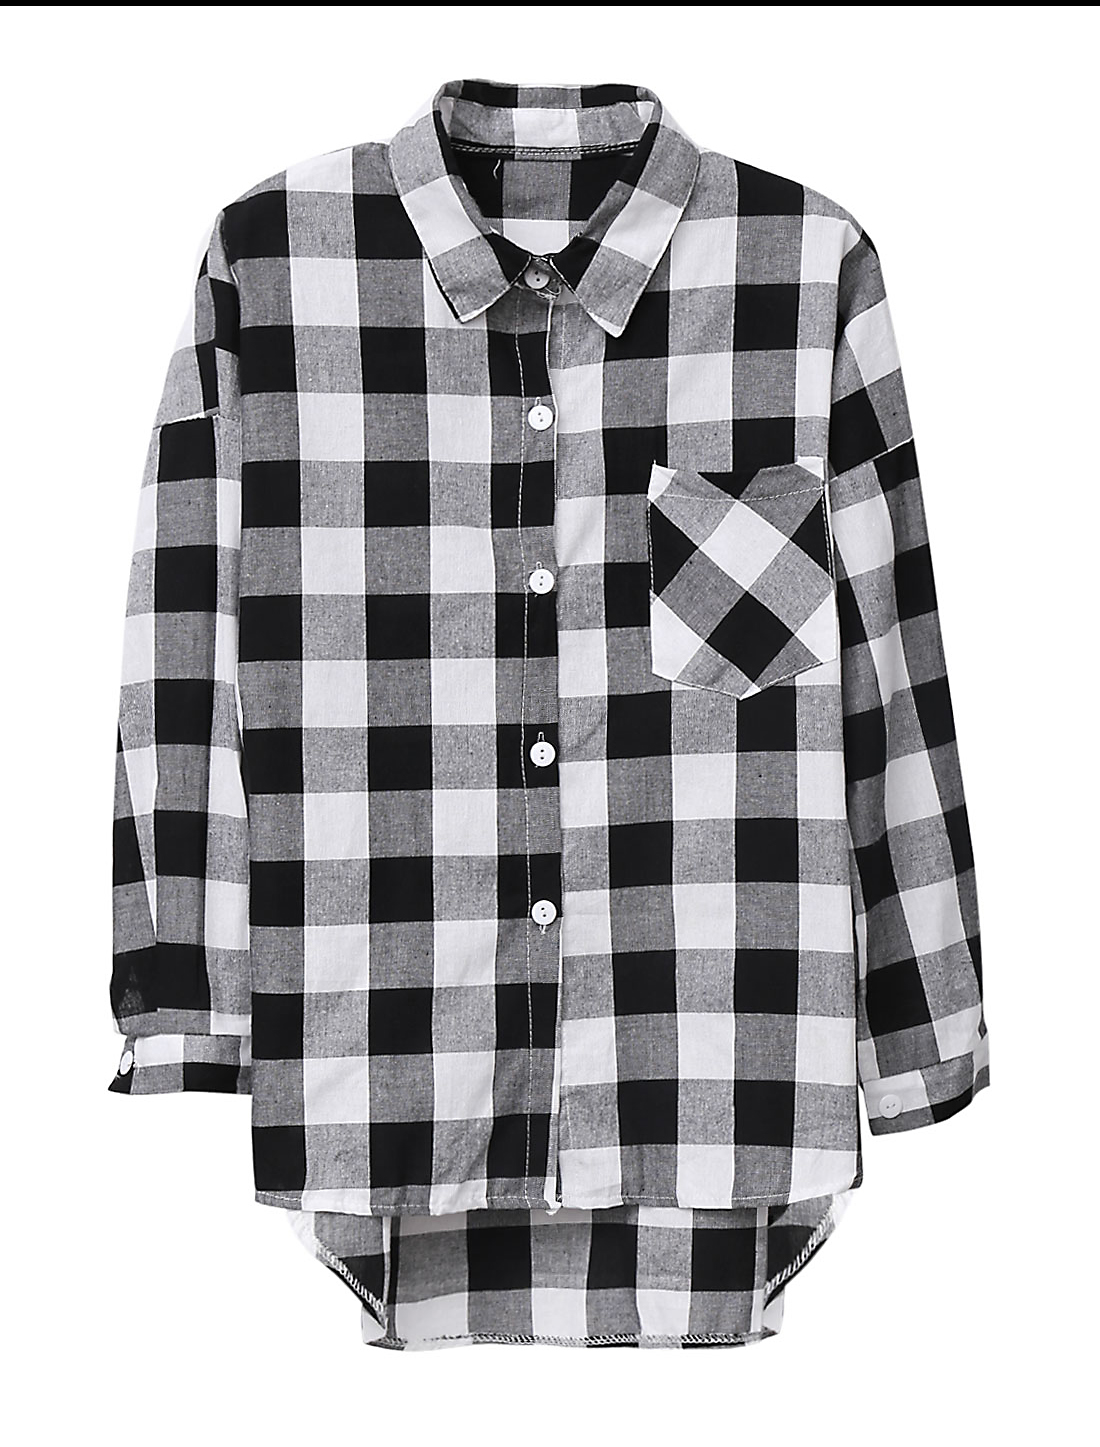 Lady Plaids Pattern Single Breasted One Pocket Chest Casual Shirt Black White S